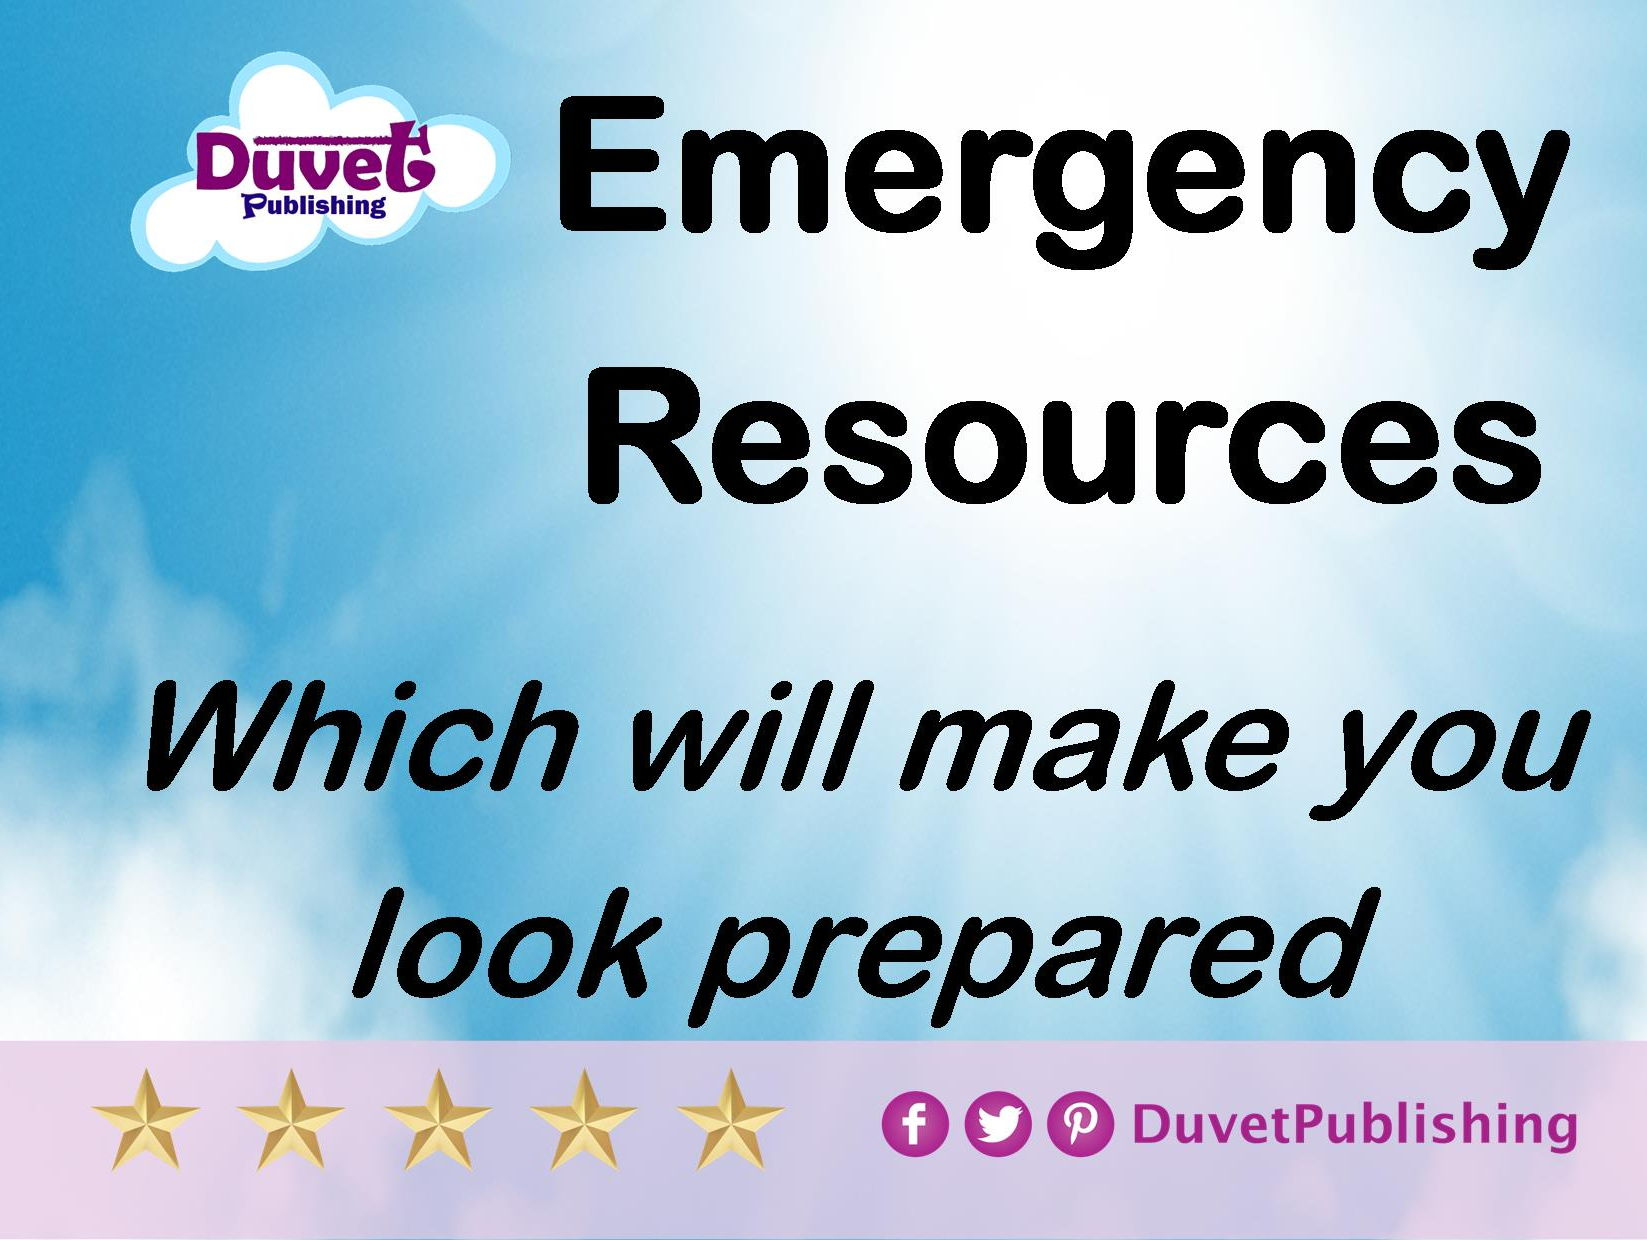 Emergency resources to pretend you're prepared